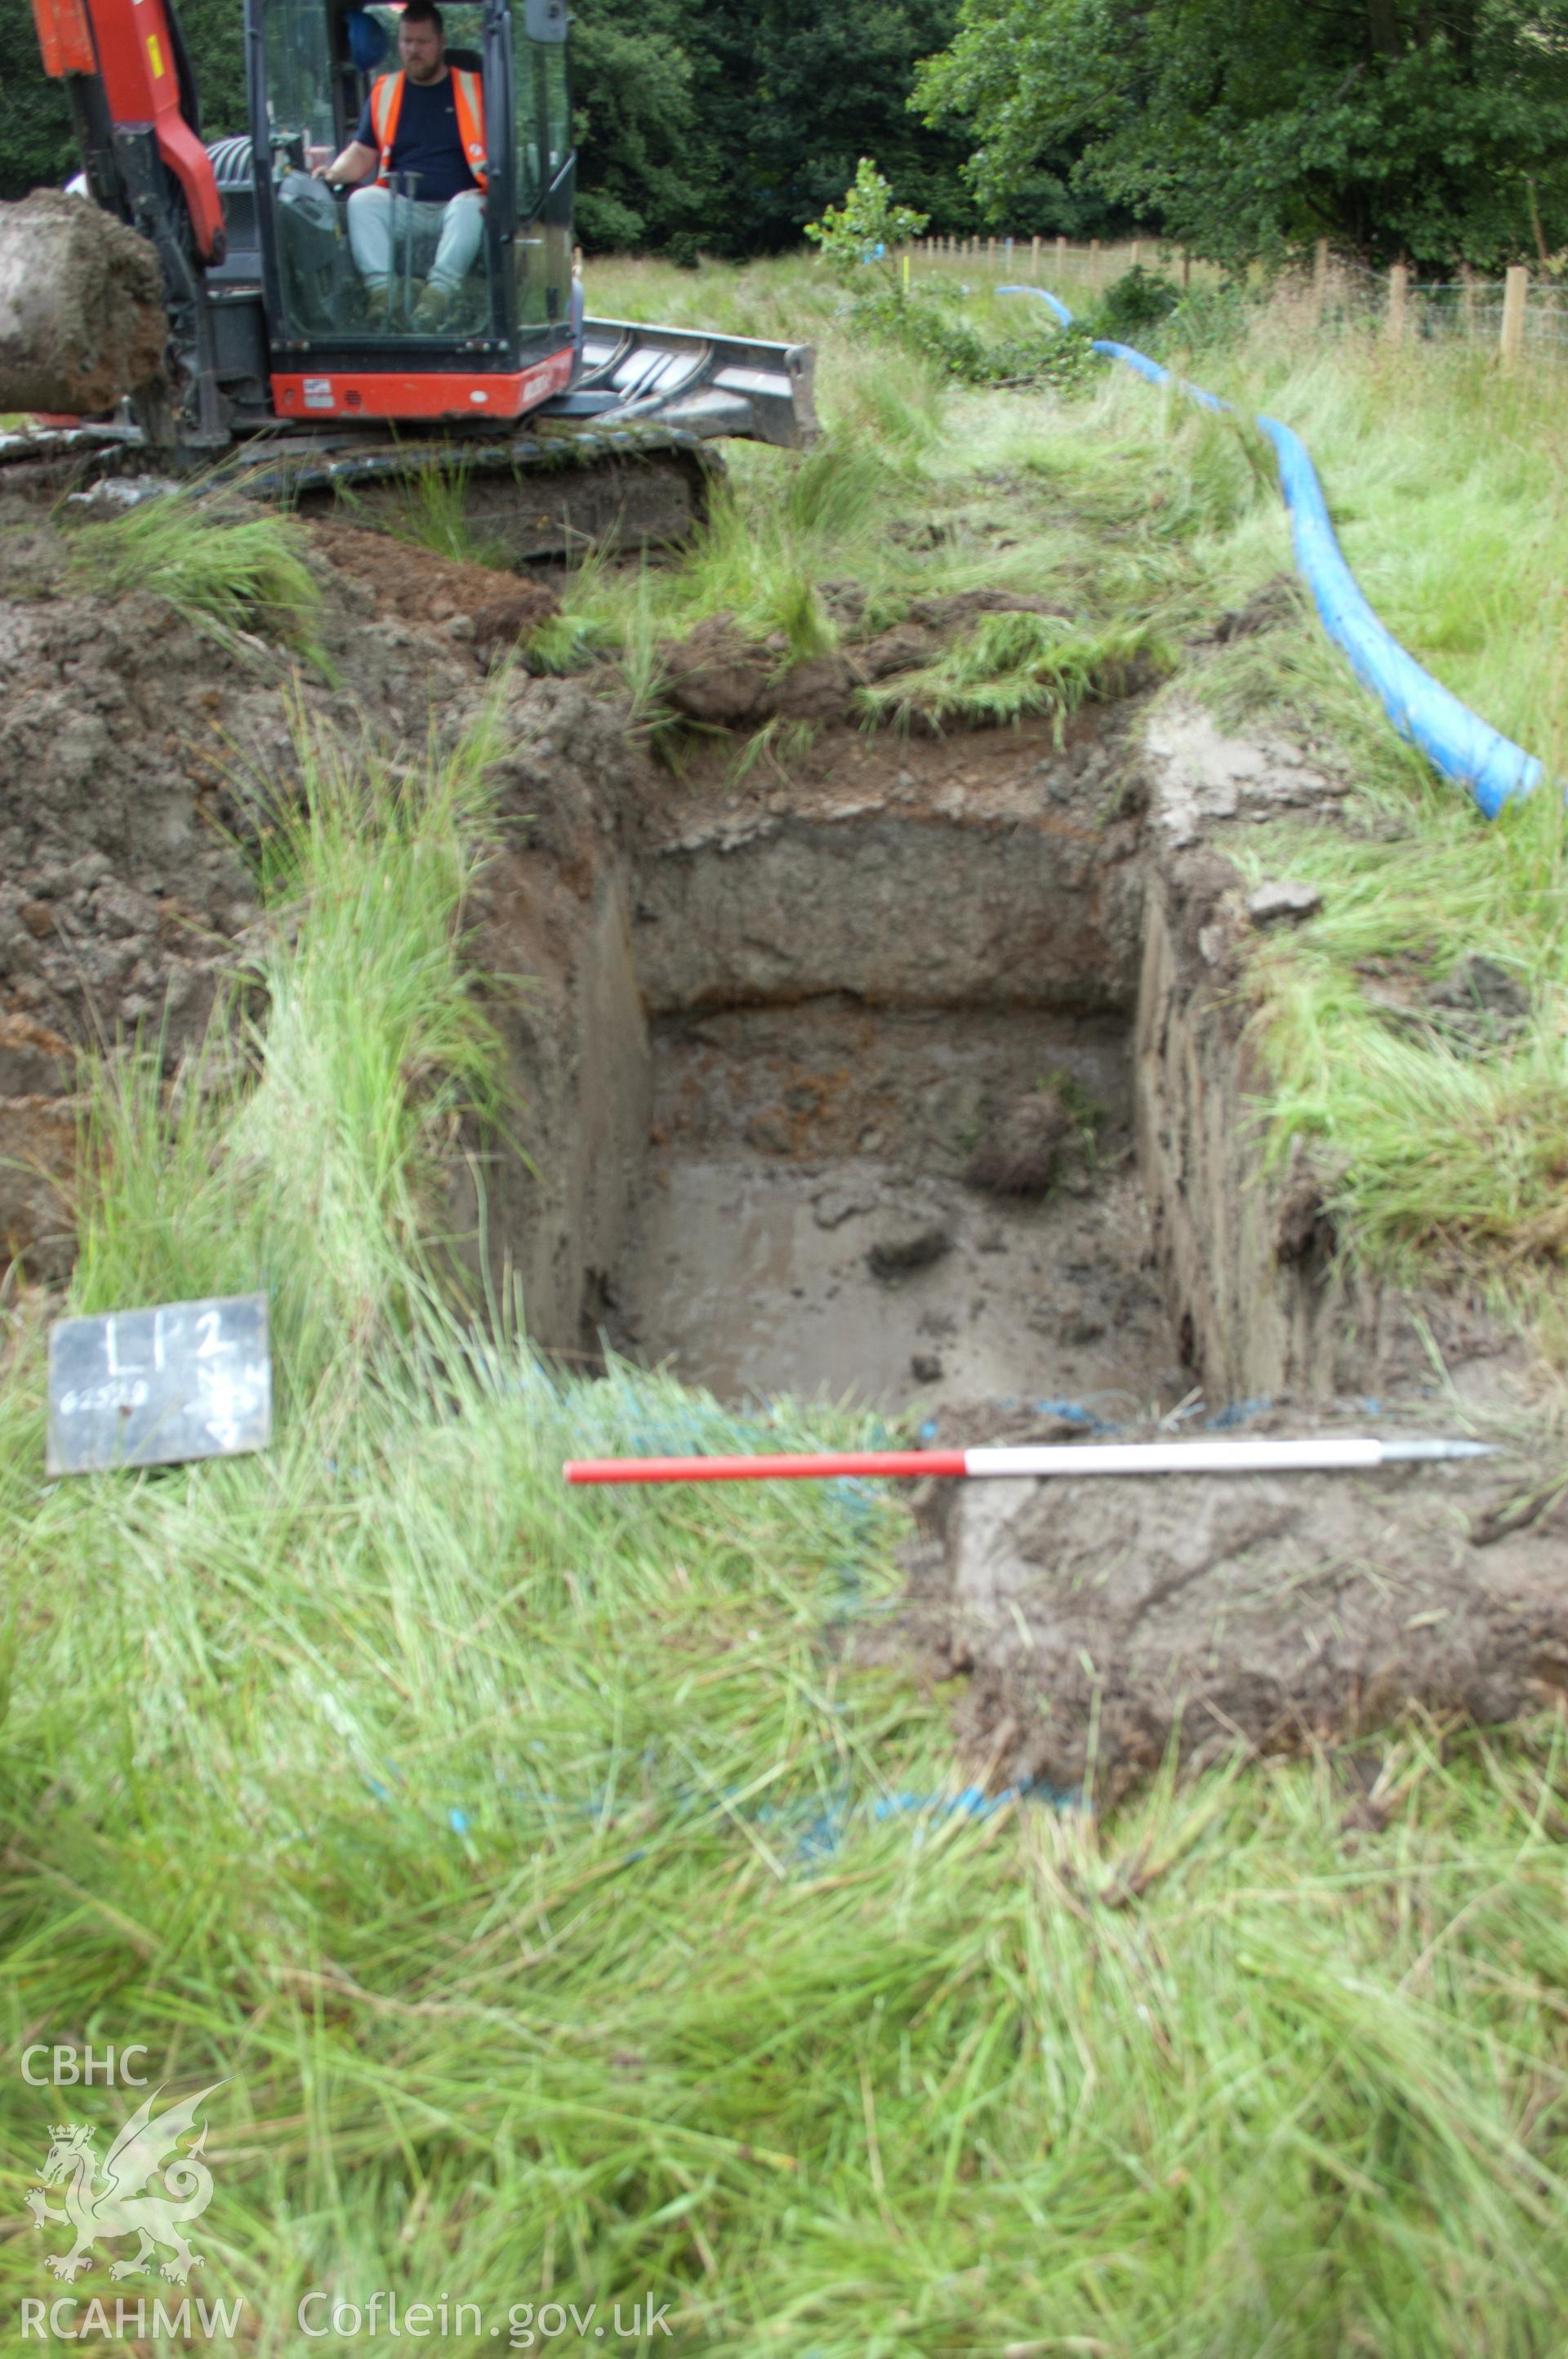 Digital photograph of view from north of launch pit 2 post-excavation showing grey clay fill. Photographed during Gwynedd Archaeological Trust's archaeological watching brief of water main renewal in Dolgellau on 28th July 2017. Project no. G2528.